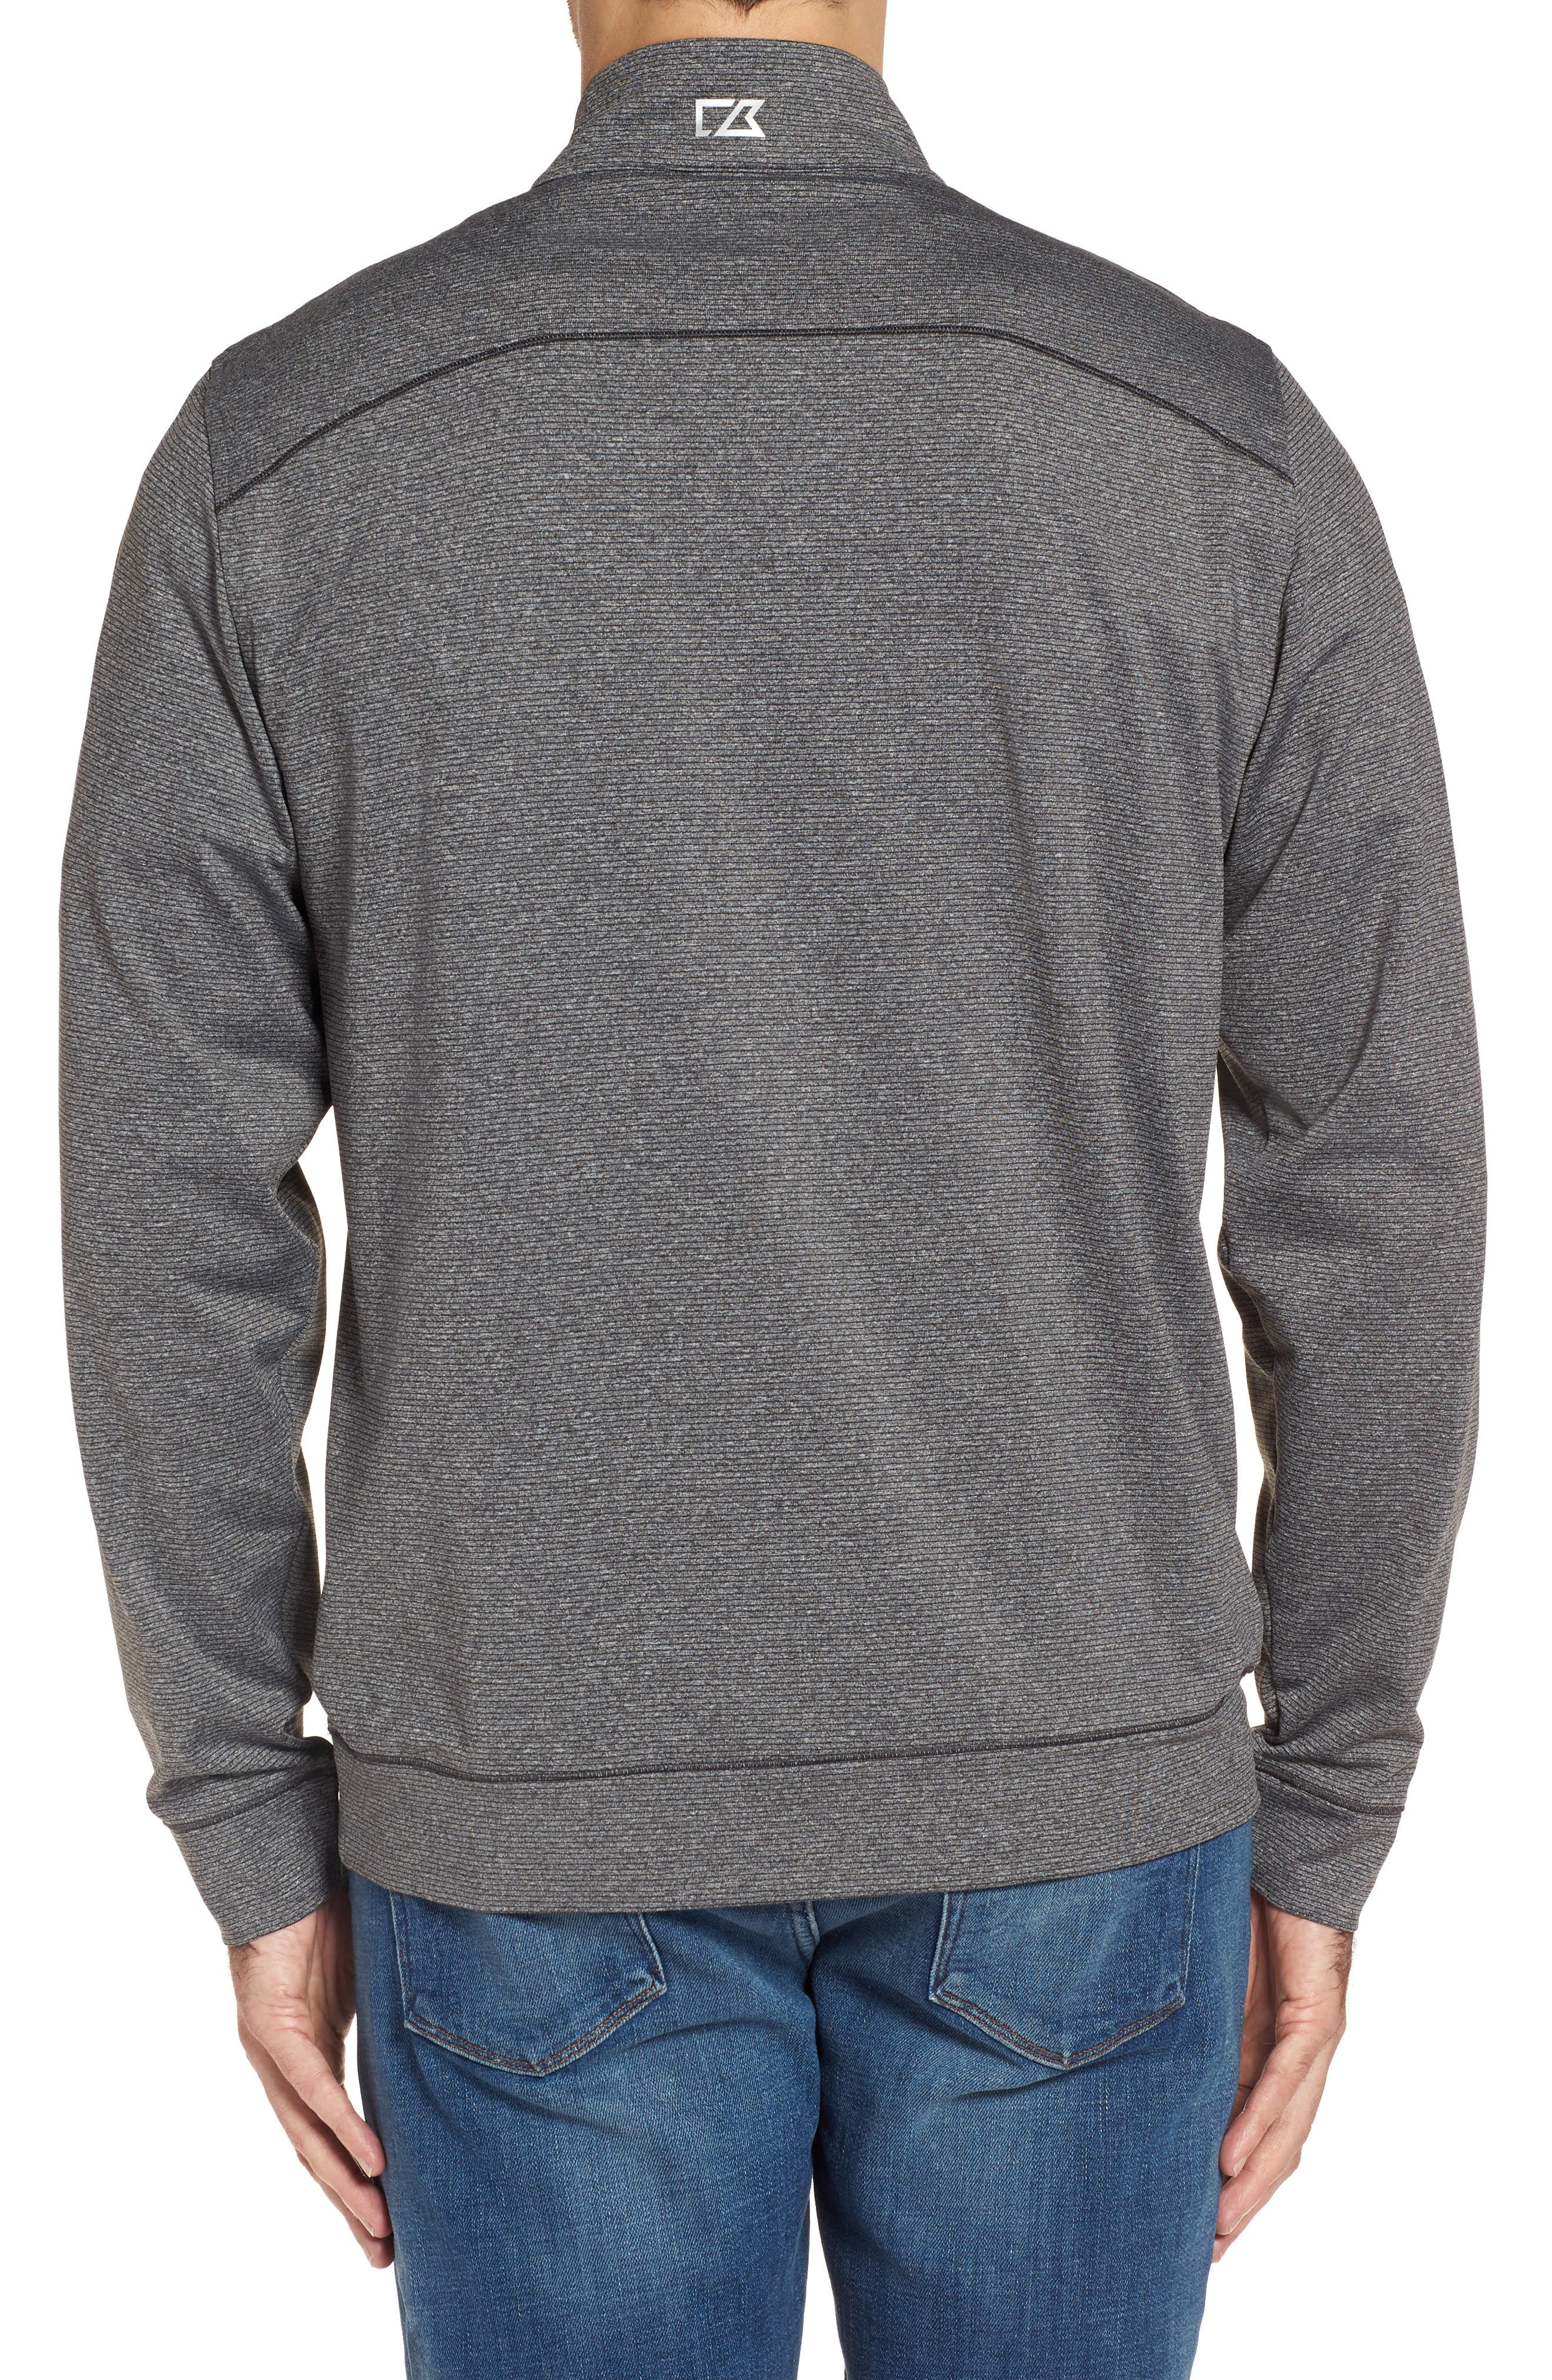 Shoreline - Philadelphia Eagles Half Zip Pullover,                             Alternate thumbnail 2, color,                             Charcoal Heather